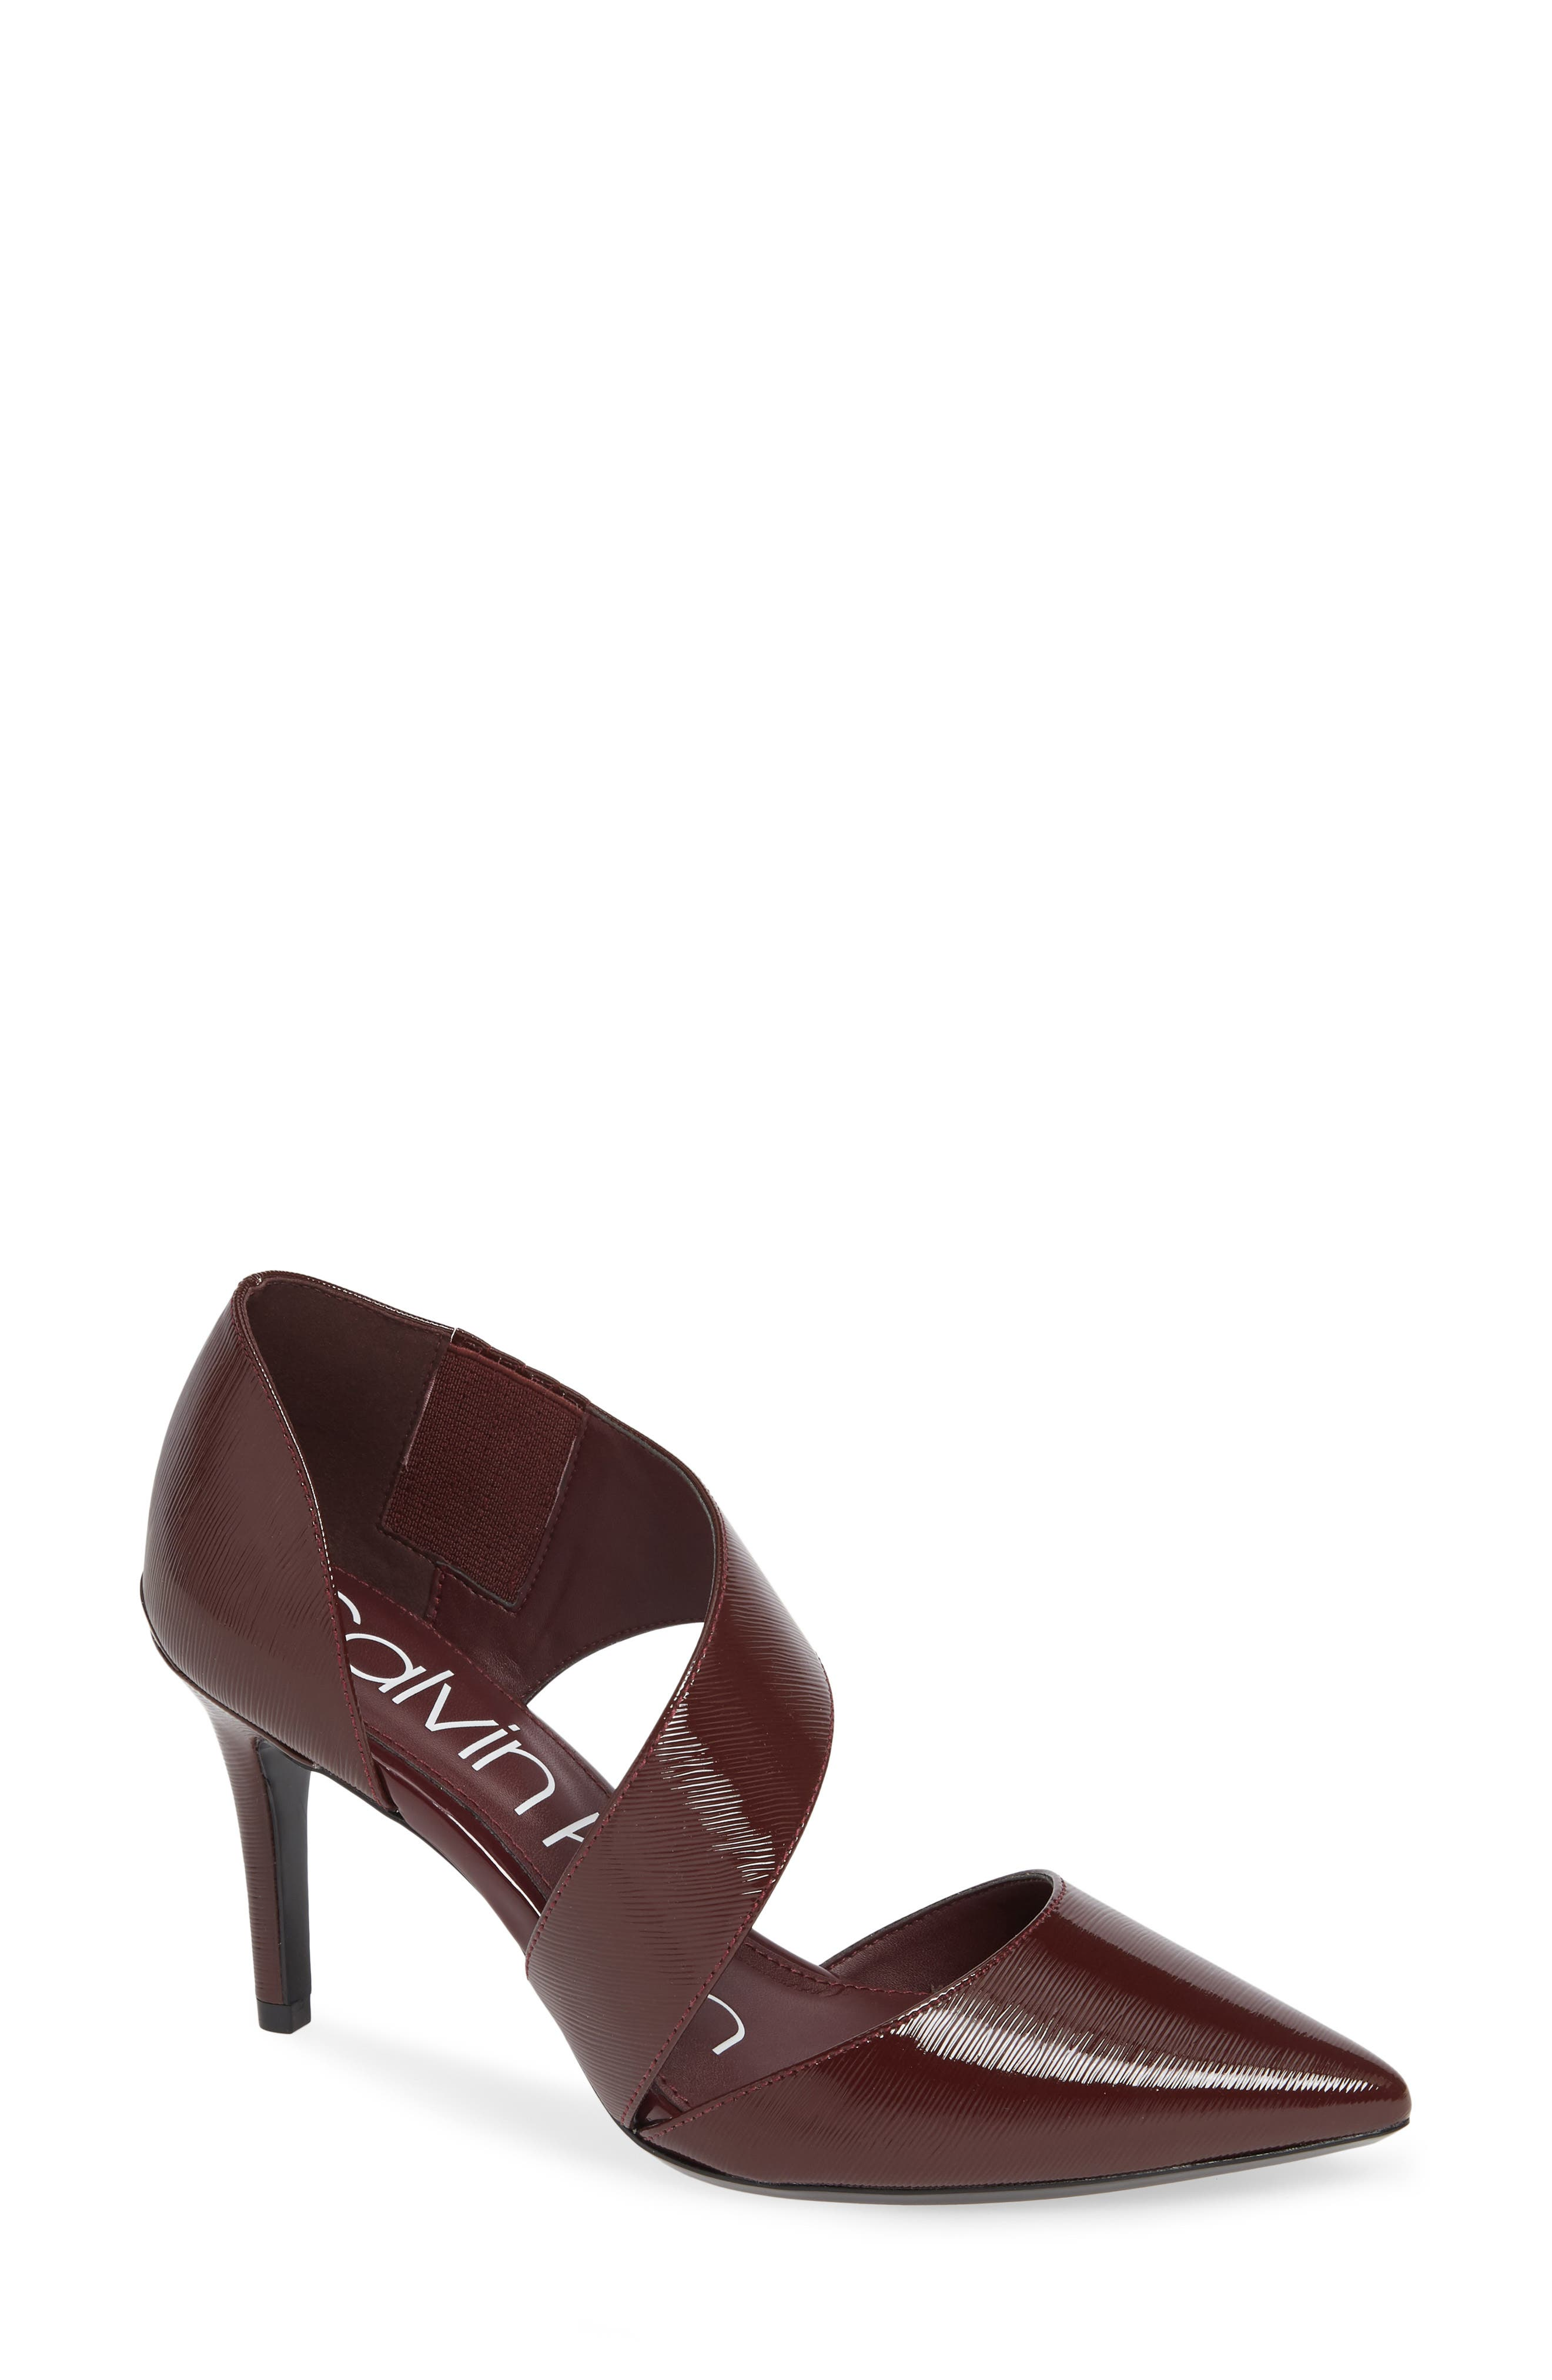 CALVIN KLEIN 'Gella' Pointy Toe Pump, Main, color, AMETHYST PATENT LEATHER